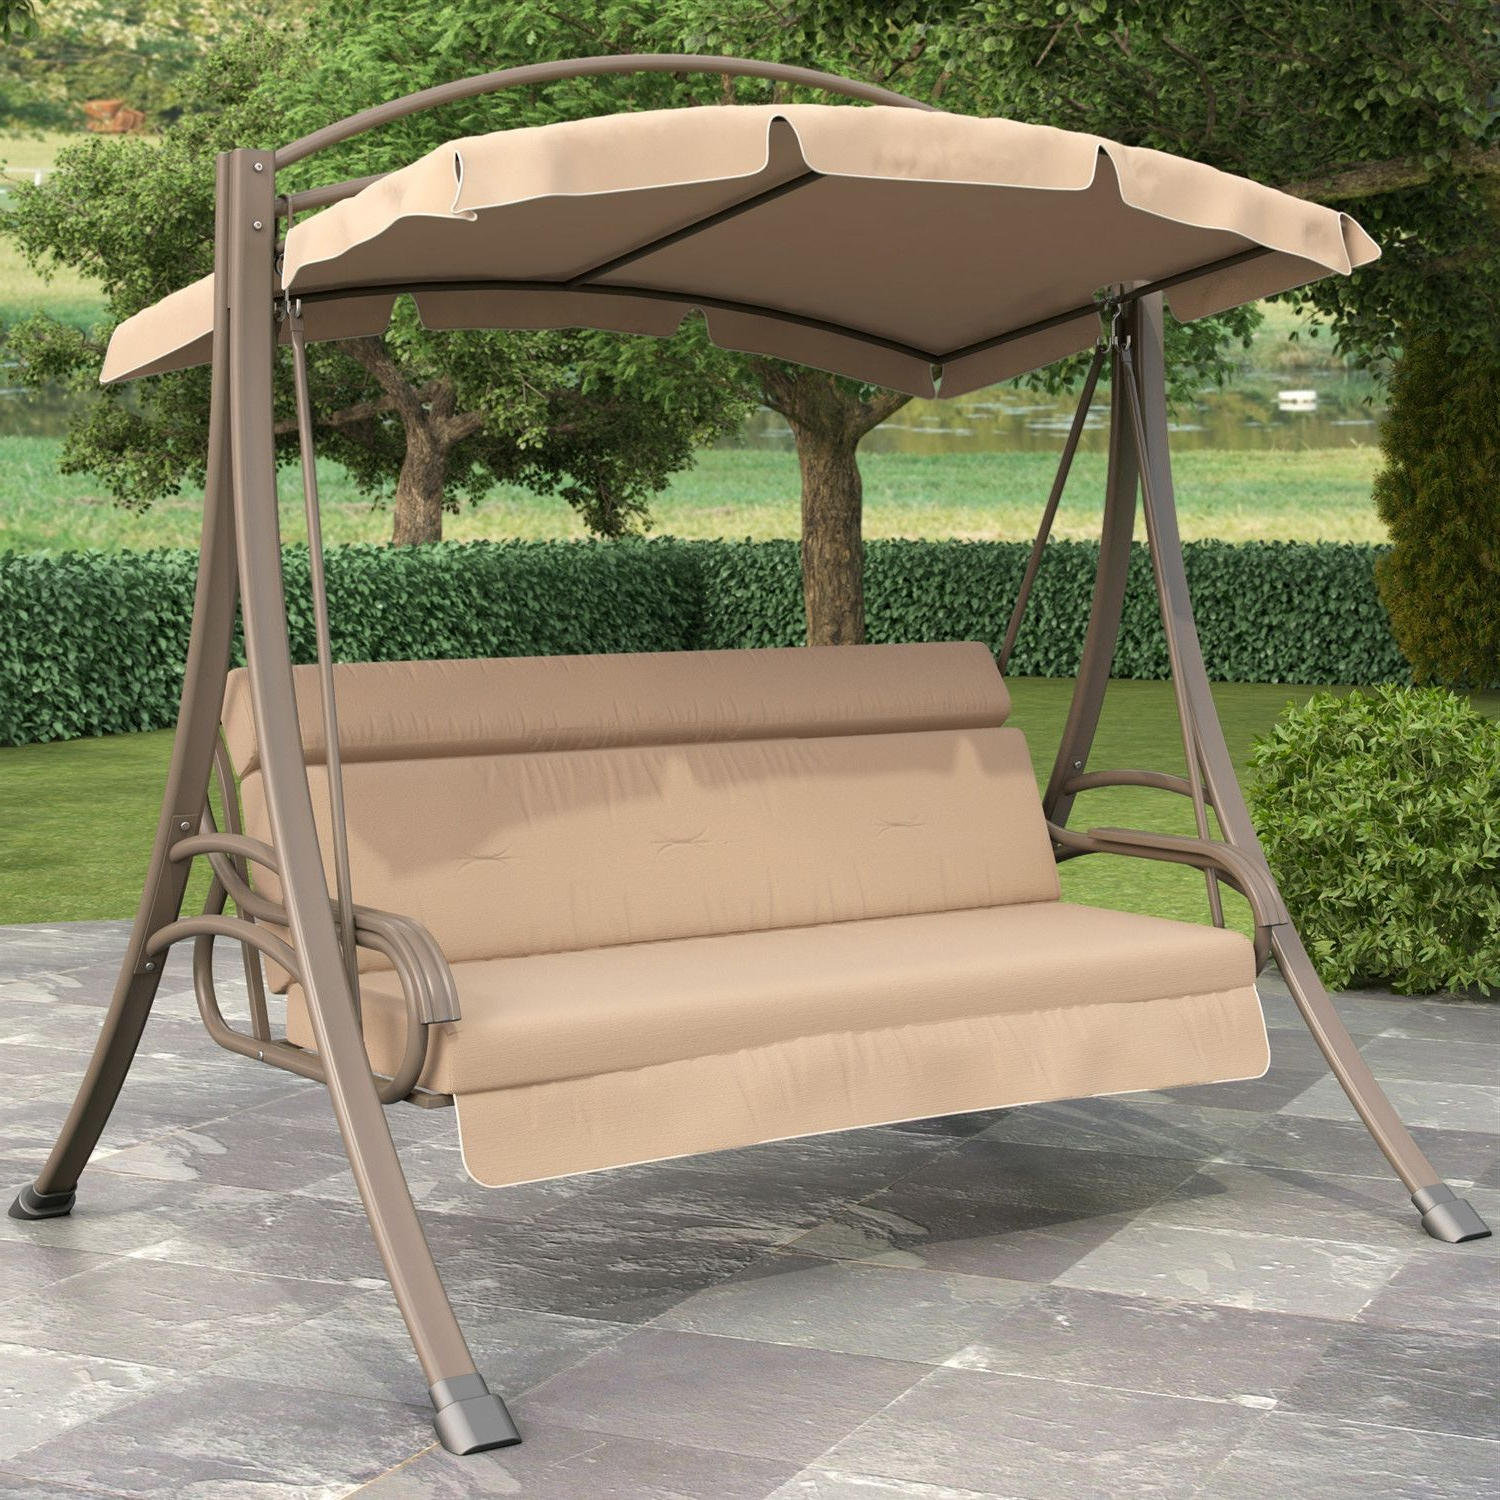 3 Person Outdoor Porch Swing With Canopy In Beige Tan Brown In Trendy 3 Person Brown Steel Outdoor Swings (View 15 of 25)